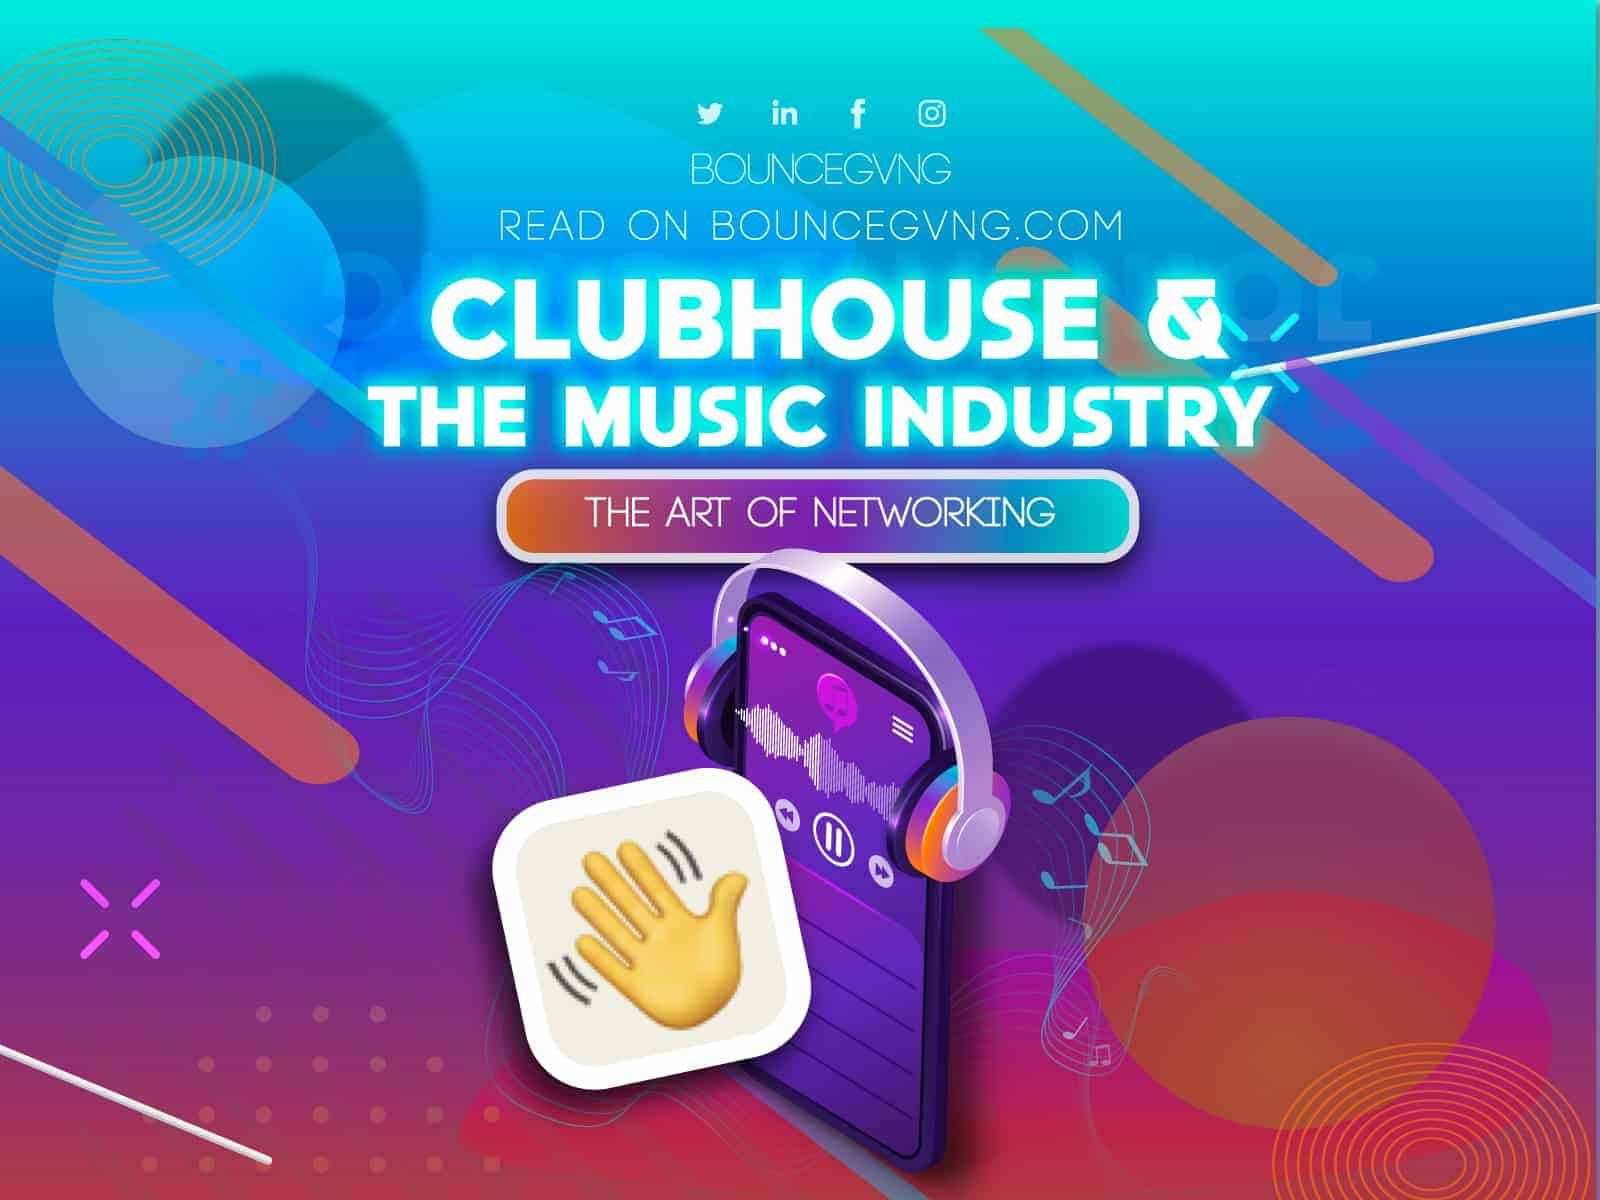 Clubhouse & the Music Industry: The Art of Networking